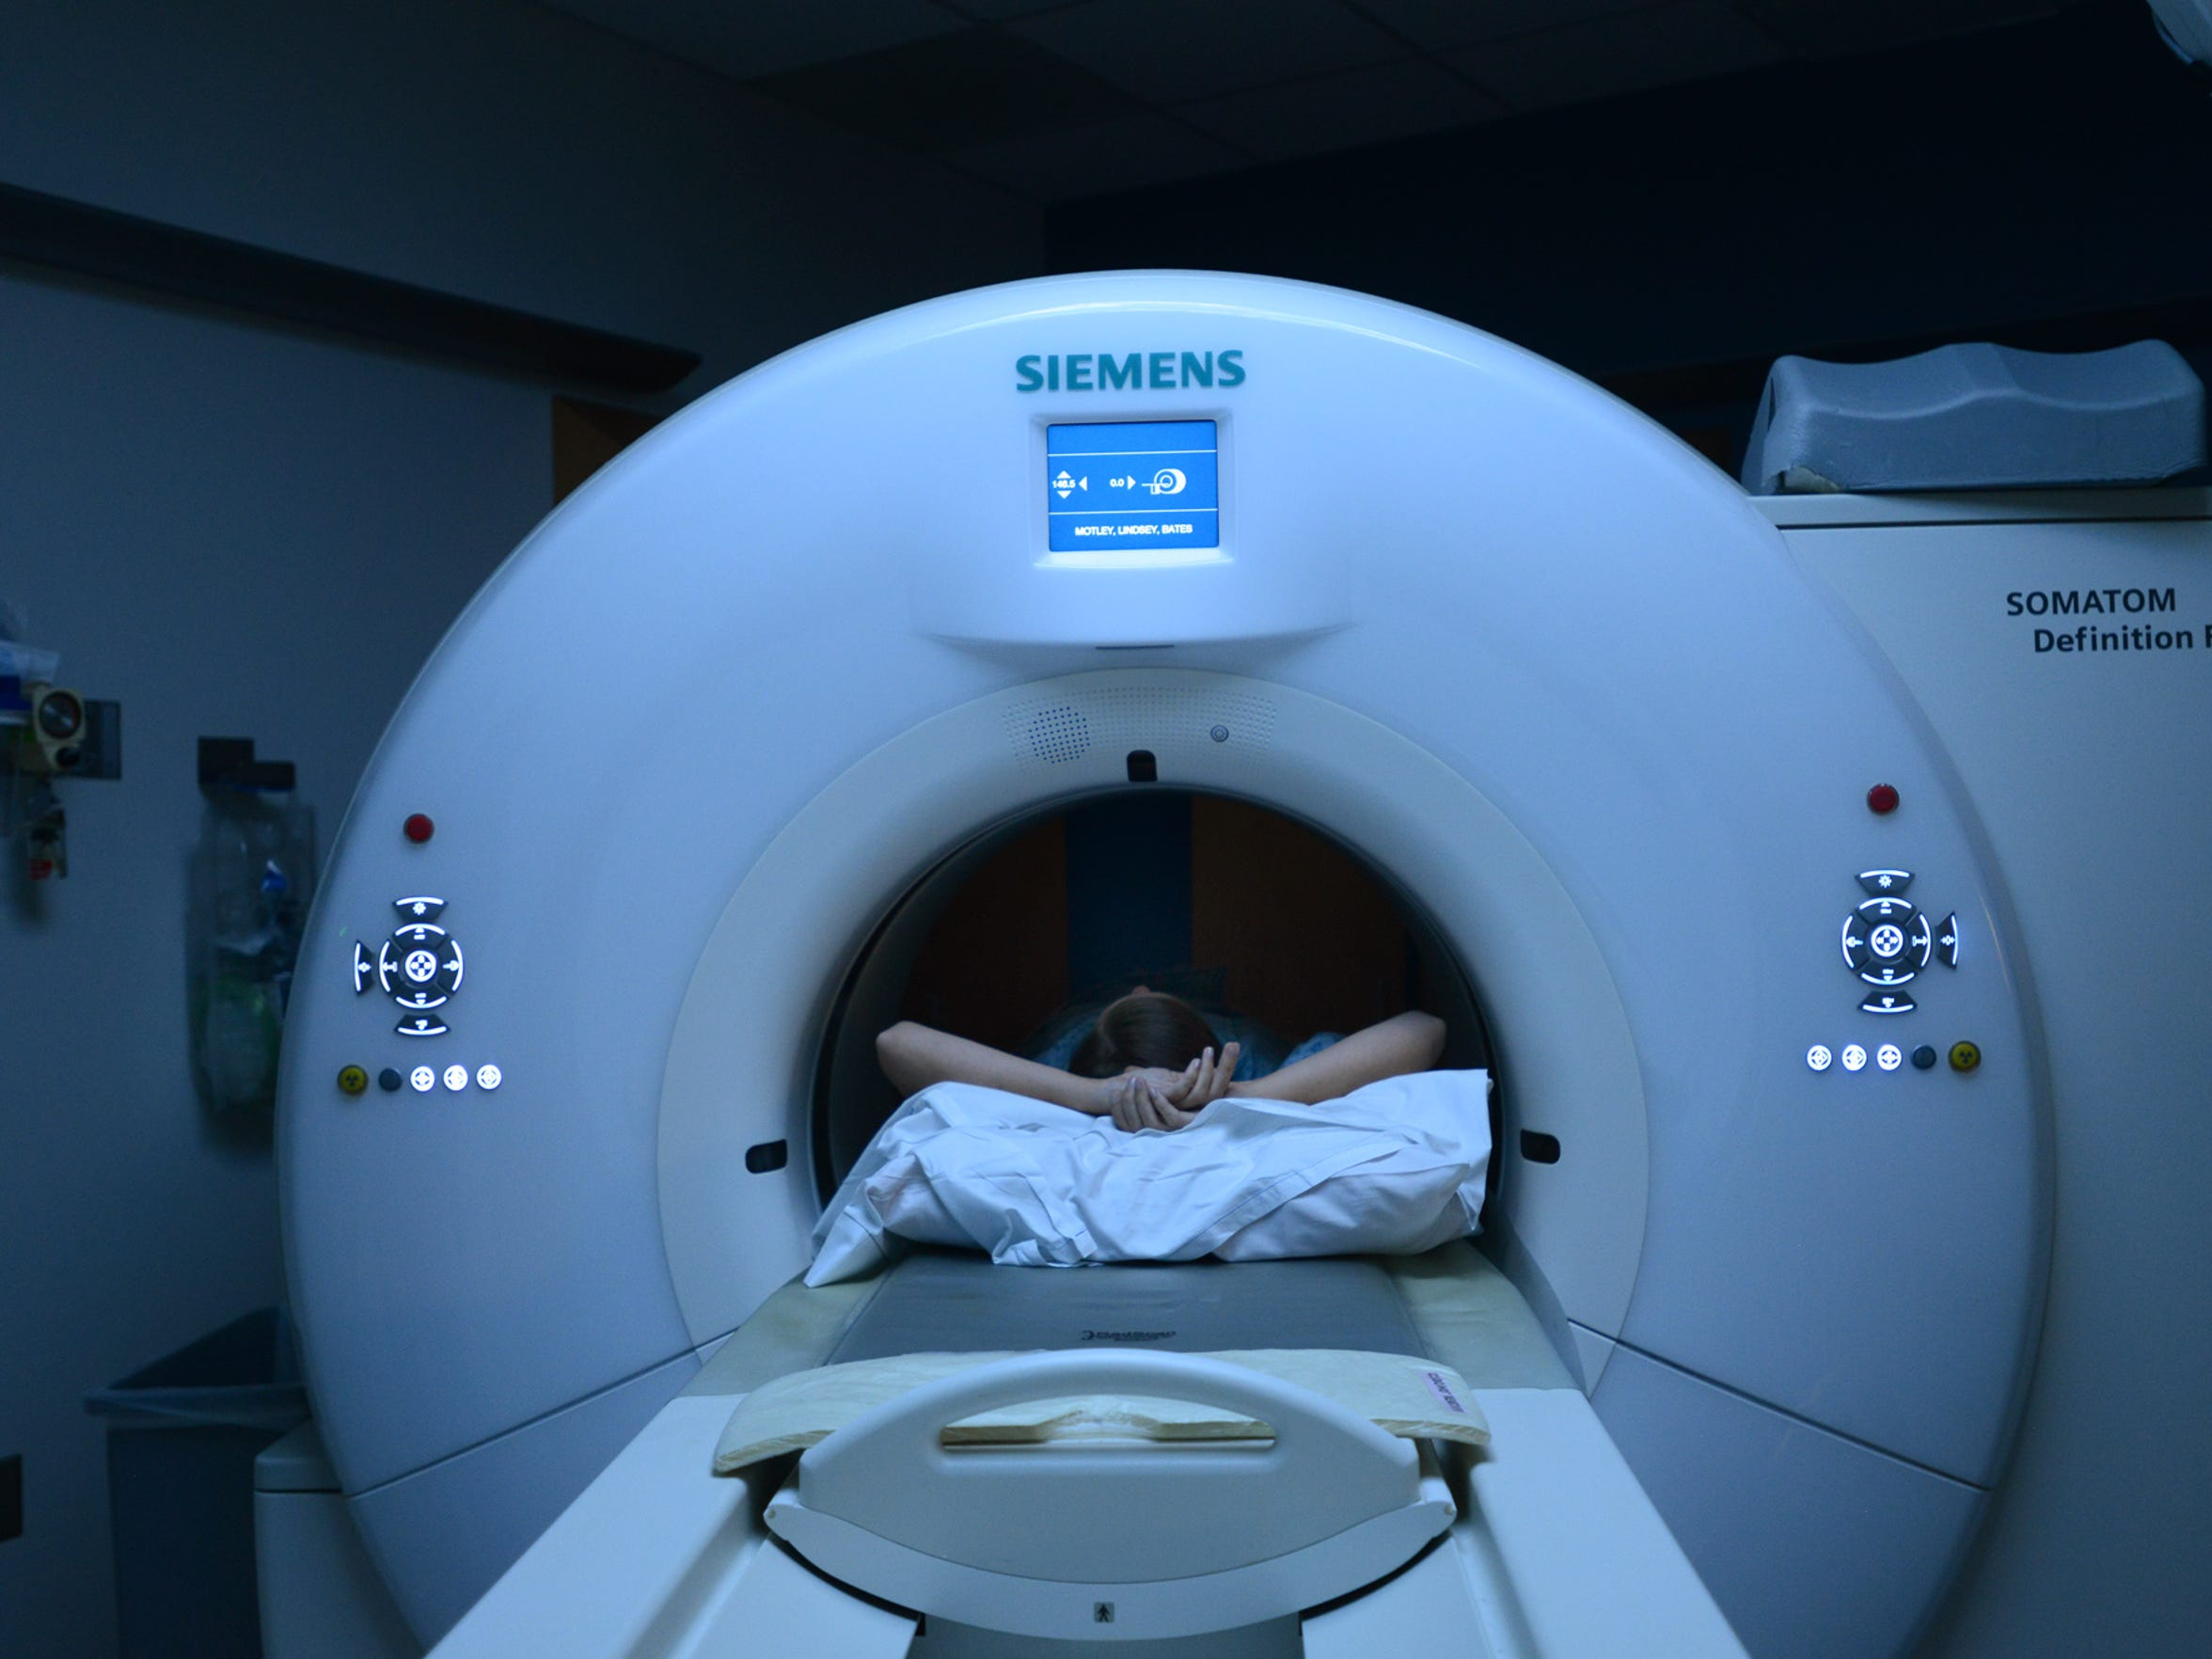 hospital told patient insurance pays for ct scan, billed him $3,878